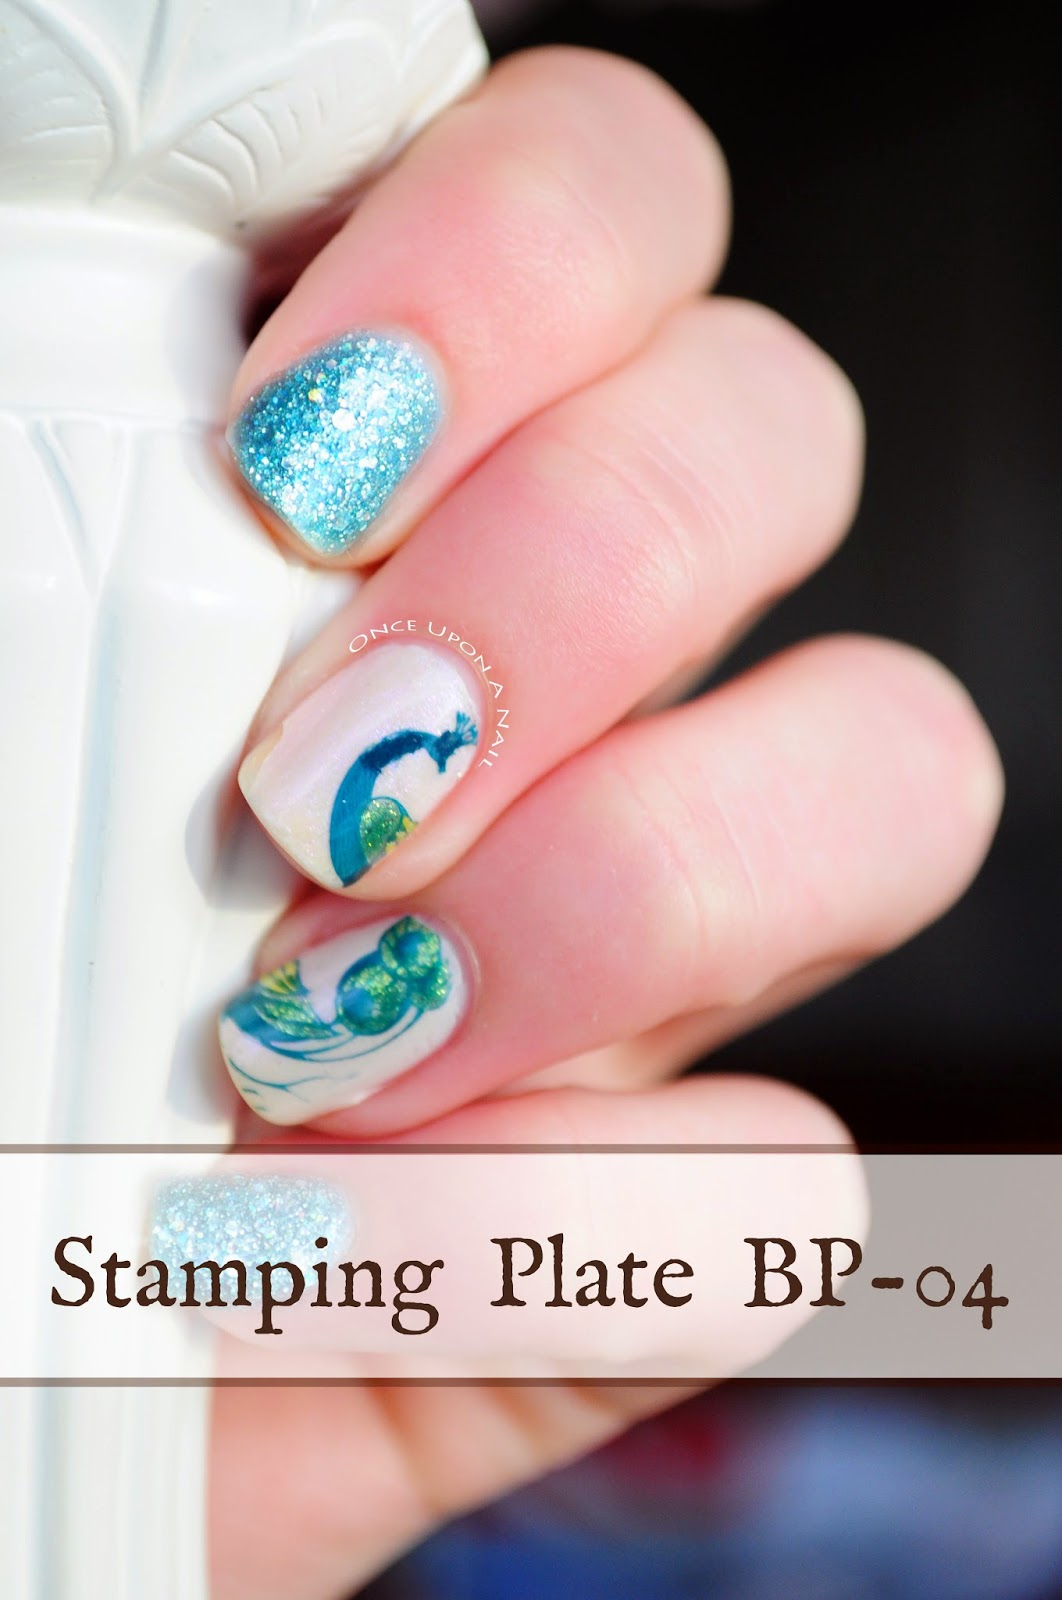 http://onceuponnails.blogspot.com/2015/01/peacock-stamp-review.html